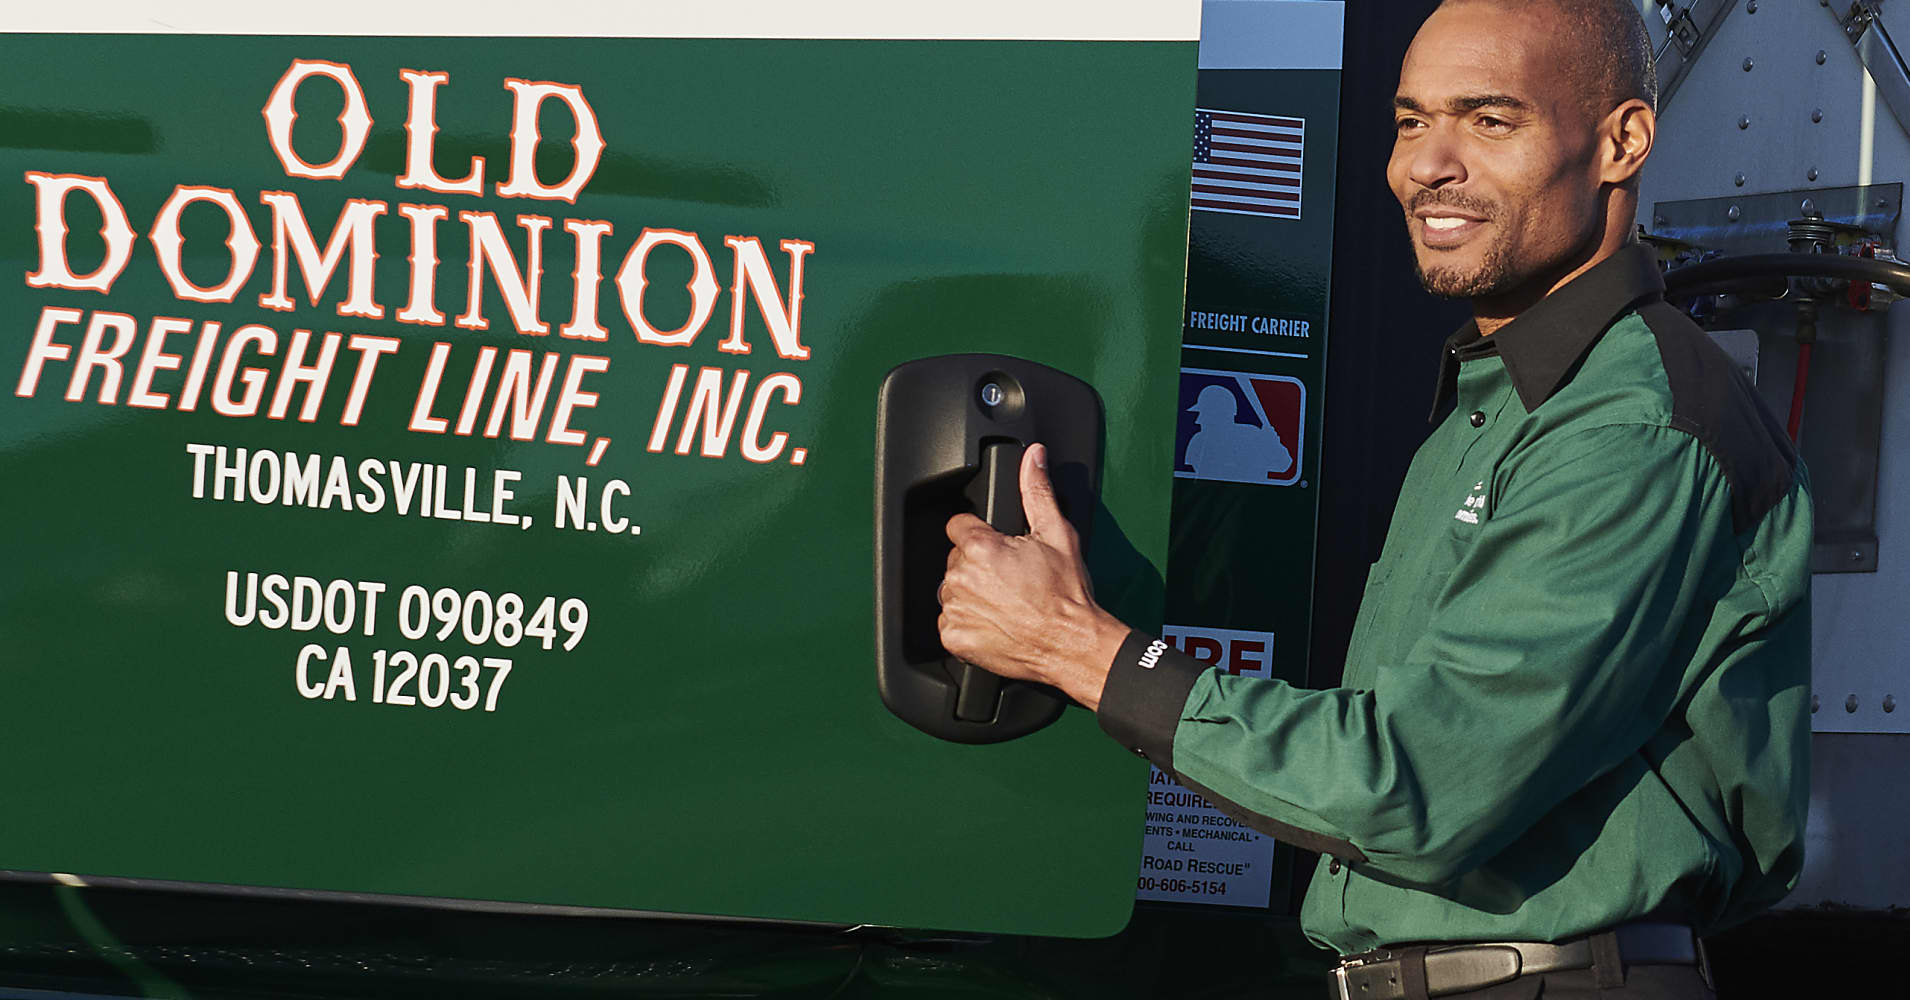 The driving force behind Old Dominion Freight Line